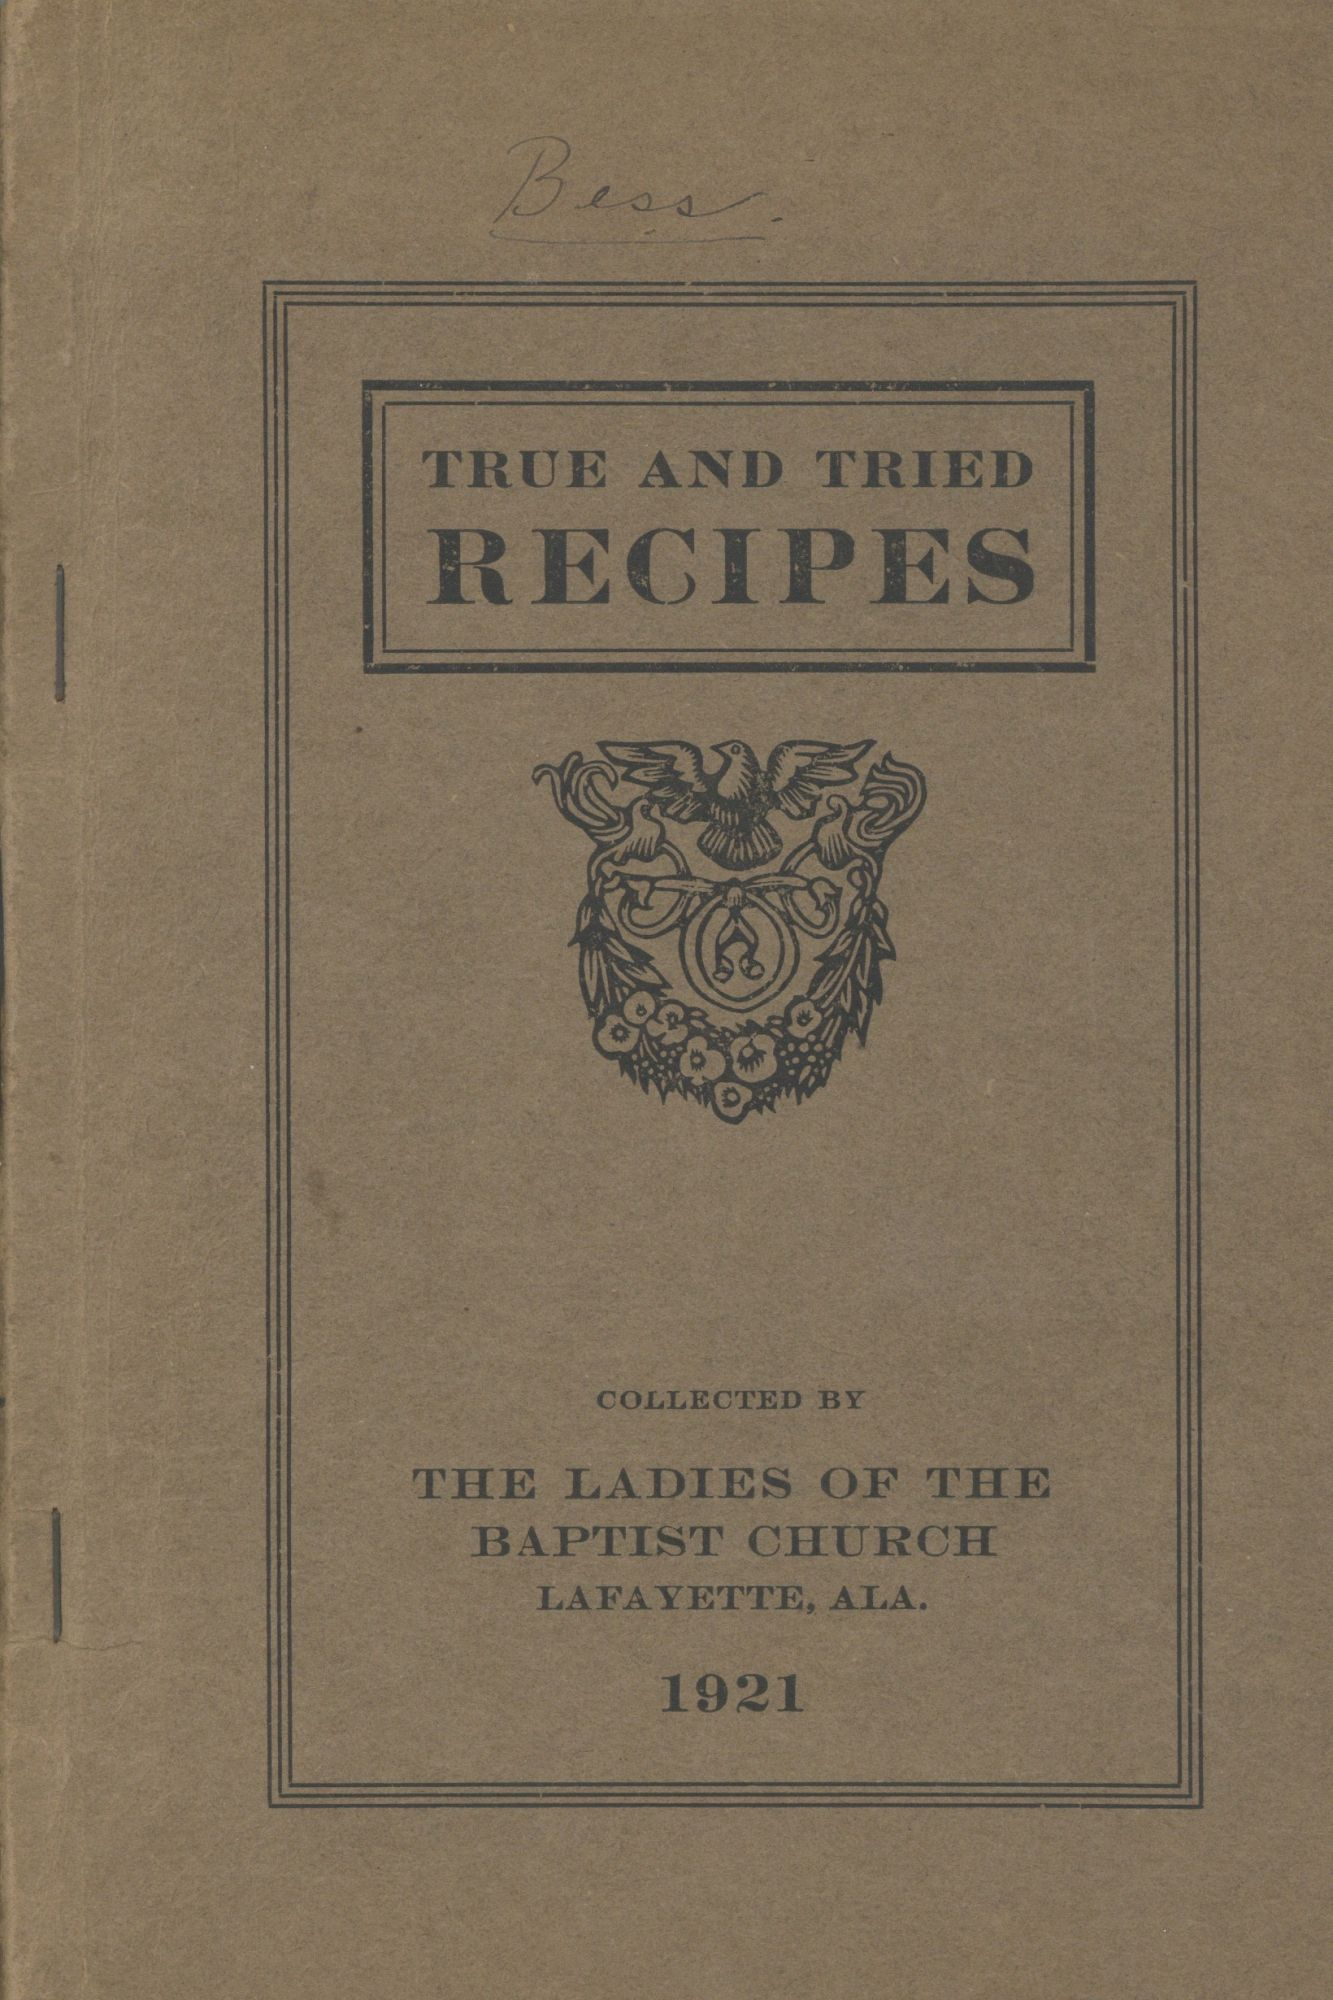 True and Tried Recipes. Collected by The Ladies of the Baptist Church, Lafayette, Ala. First Baptist Church, Ladies of the Church, Ala Lafayette.